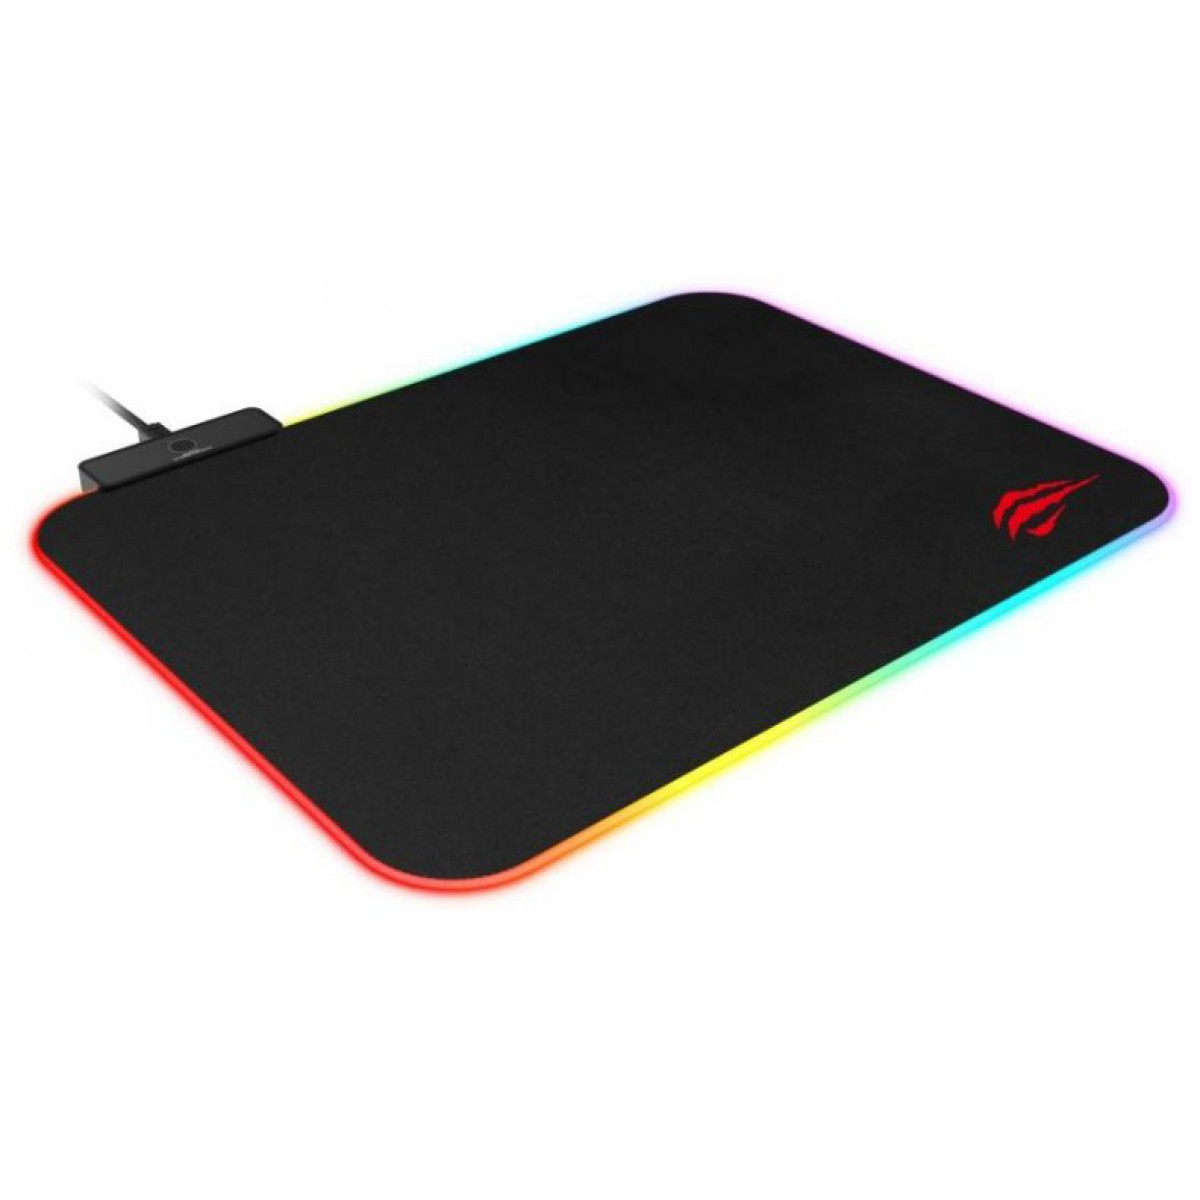 Mousepad Gamer Havit MP901 RGB, Médio, Black